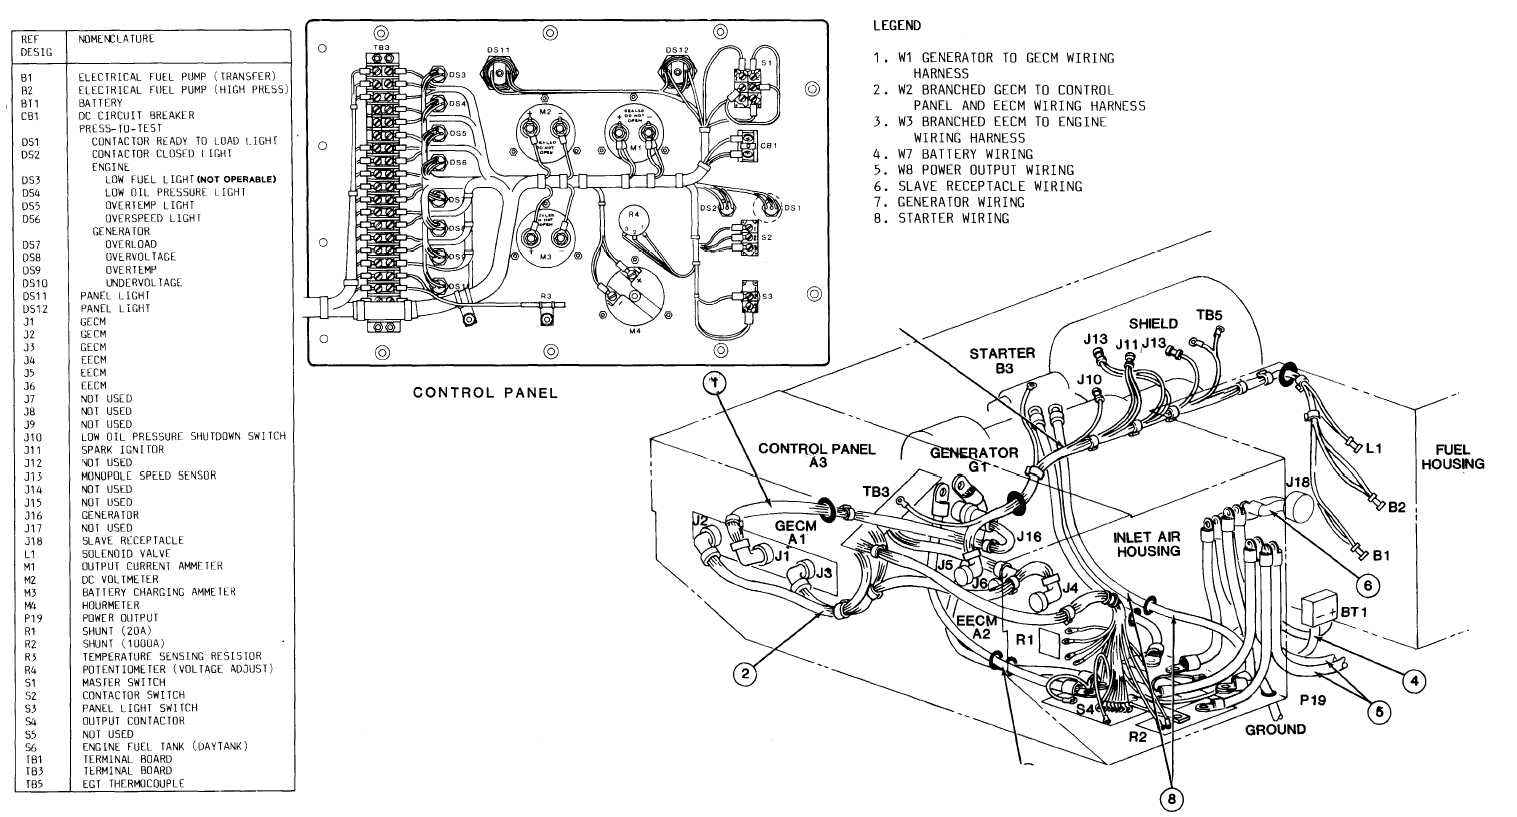 12 volt conversion wiring diagram farmall h  12  free